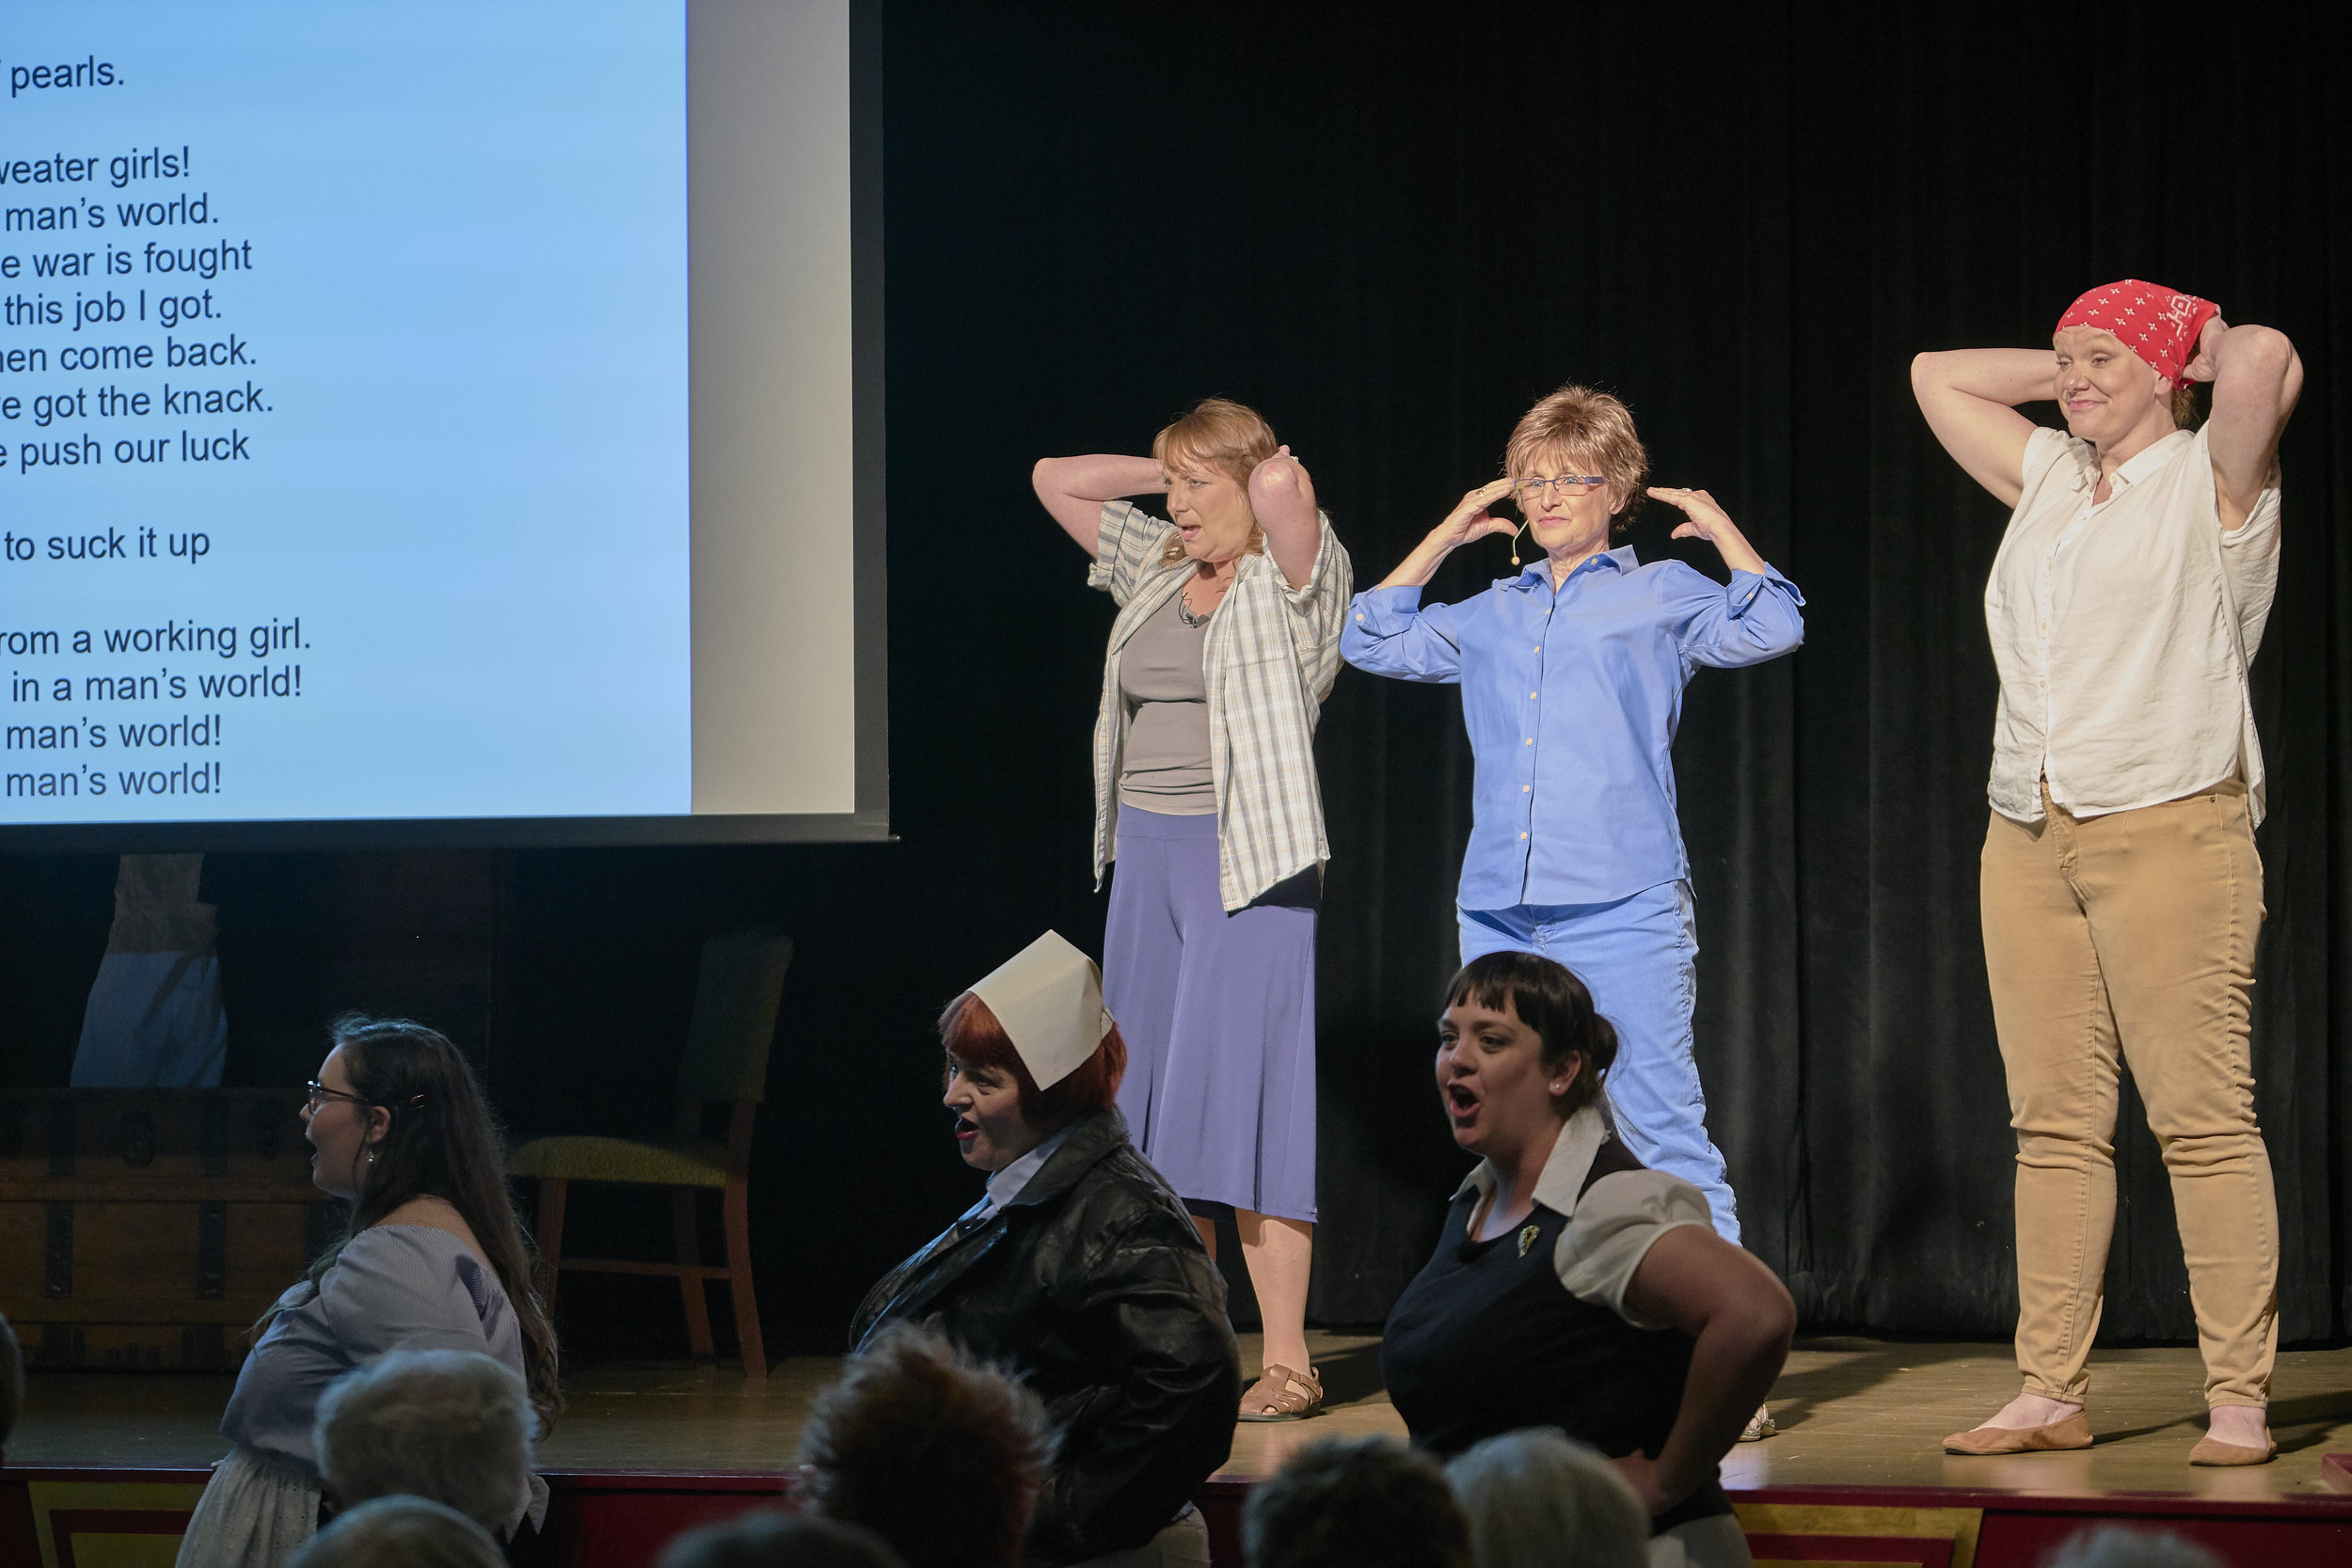 "L to R on stage, Lisa Green as Dorothea Lange, Darla Hoffmann as Narrator, and Liz Vincent as Adeline Van Buren; and L to R below stage, Brooke Sauter as Hazel Funk Holmes, Stephanie Rhein as Edna, a Phillips 66 Highway Hostess, and Karen Wright as Ray Eames sing ""Bandanas tied around our curls"" in the original song, ""Making Good in a Man's World,"" the finale to Act One in the Pontiac production June 22-23. (Photo by Mitchell T. Fransen, courtesy of the City of Pontiac.)"